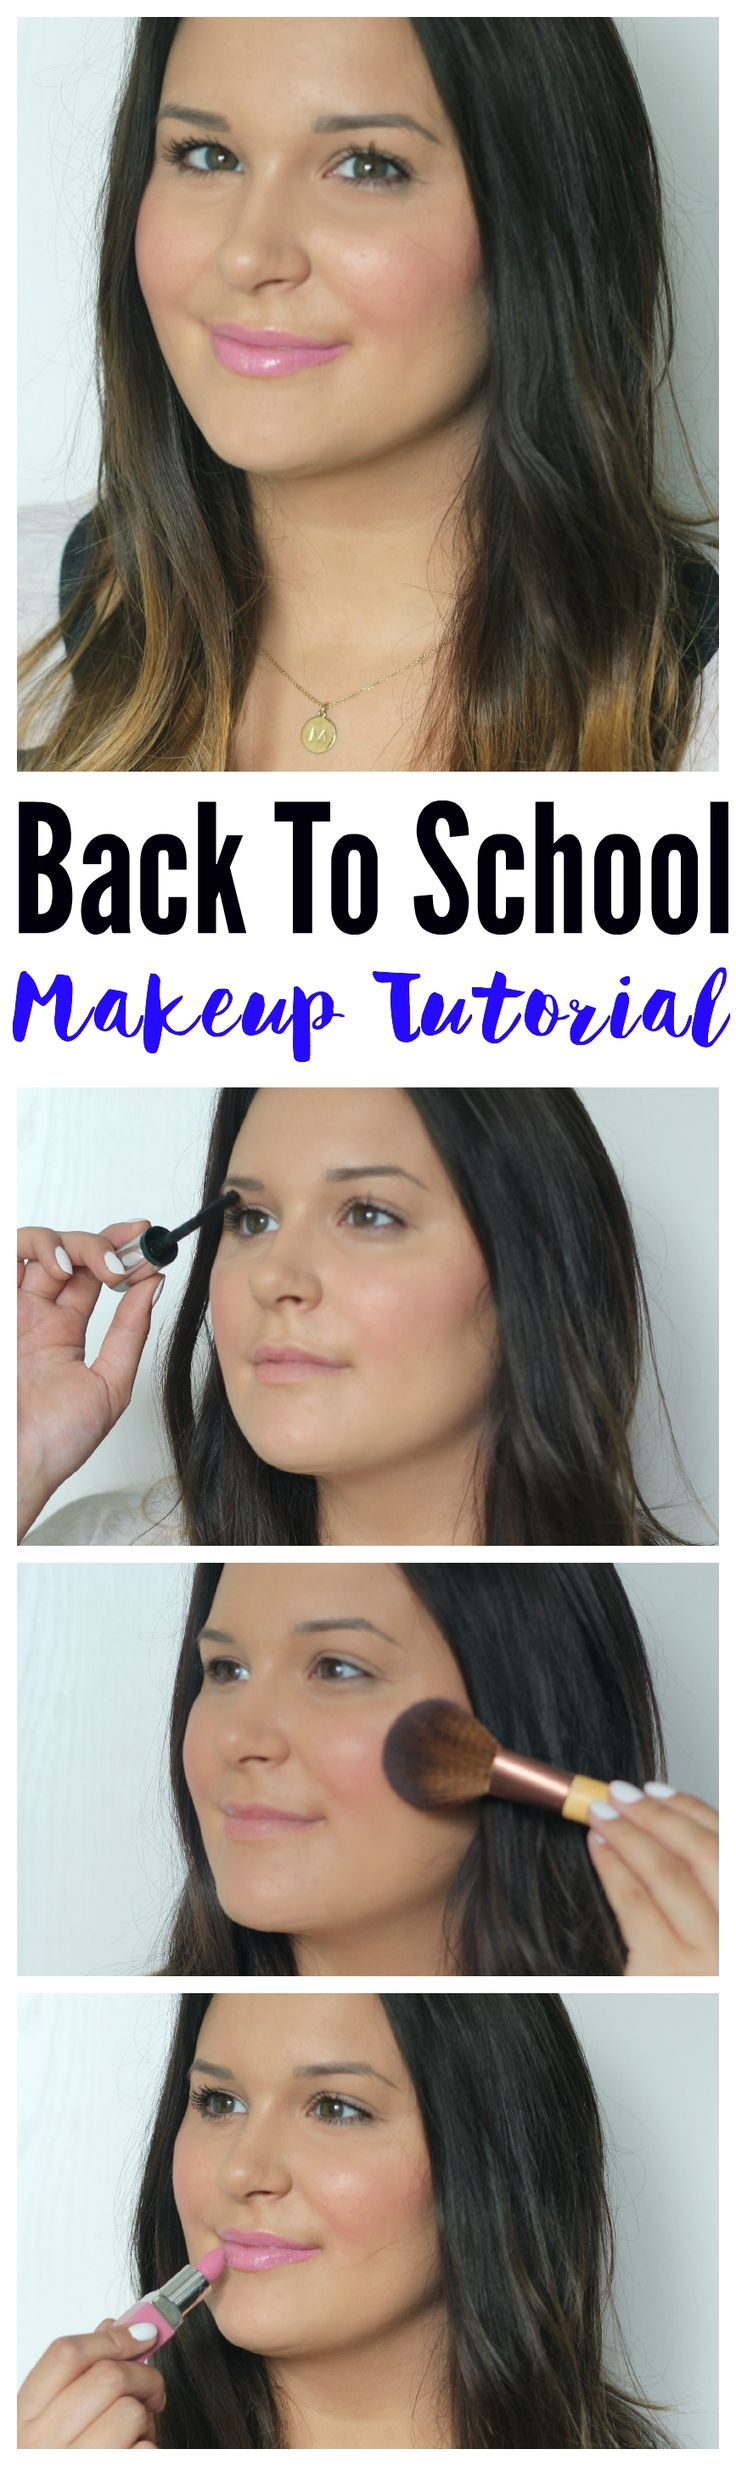 Heading back to school? Try out this back to school makeup tutorial in under 10 minutes! @Clinique #ad